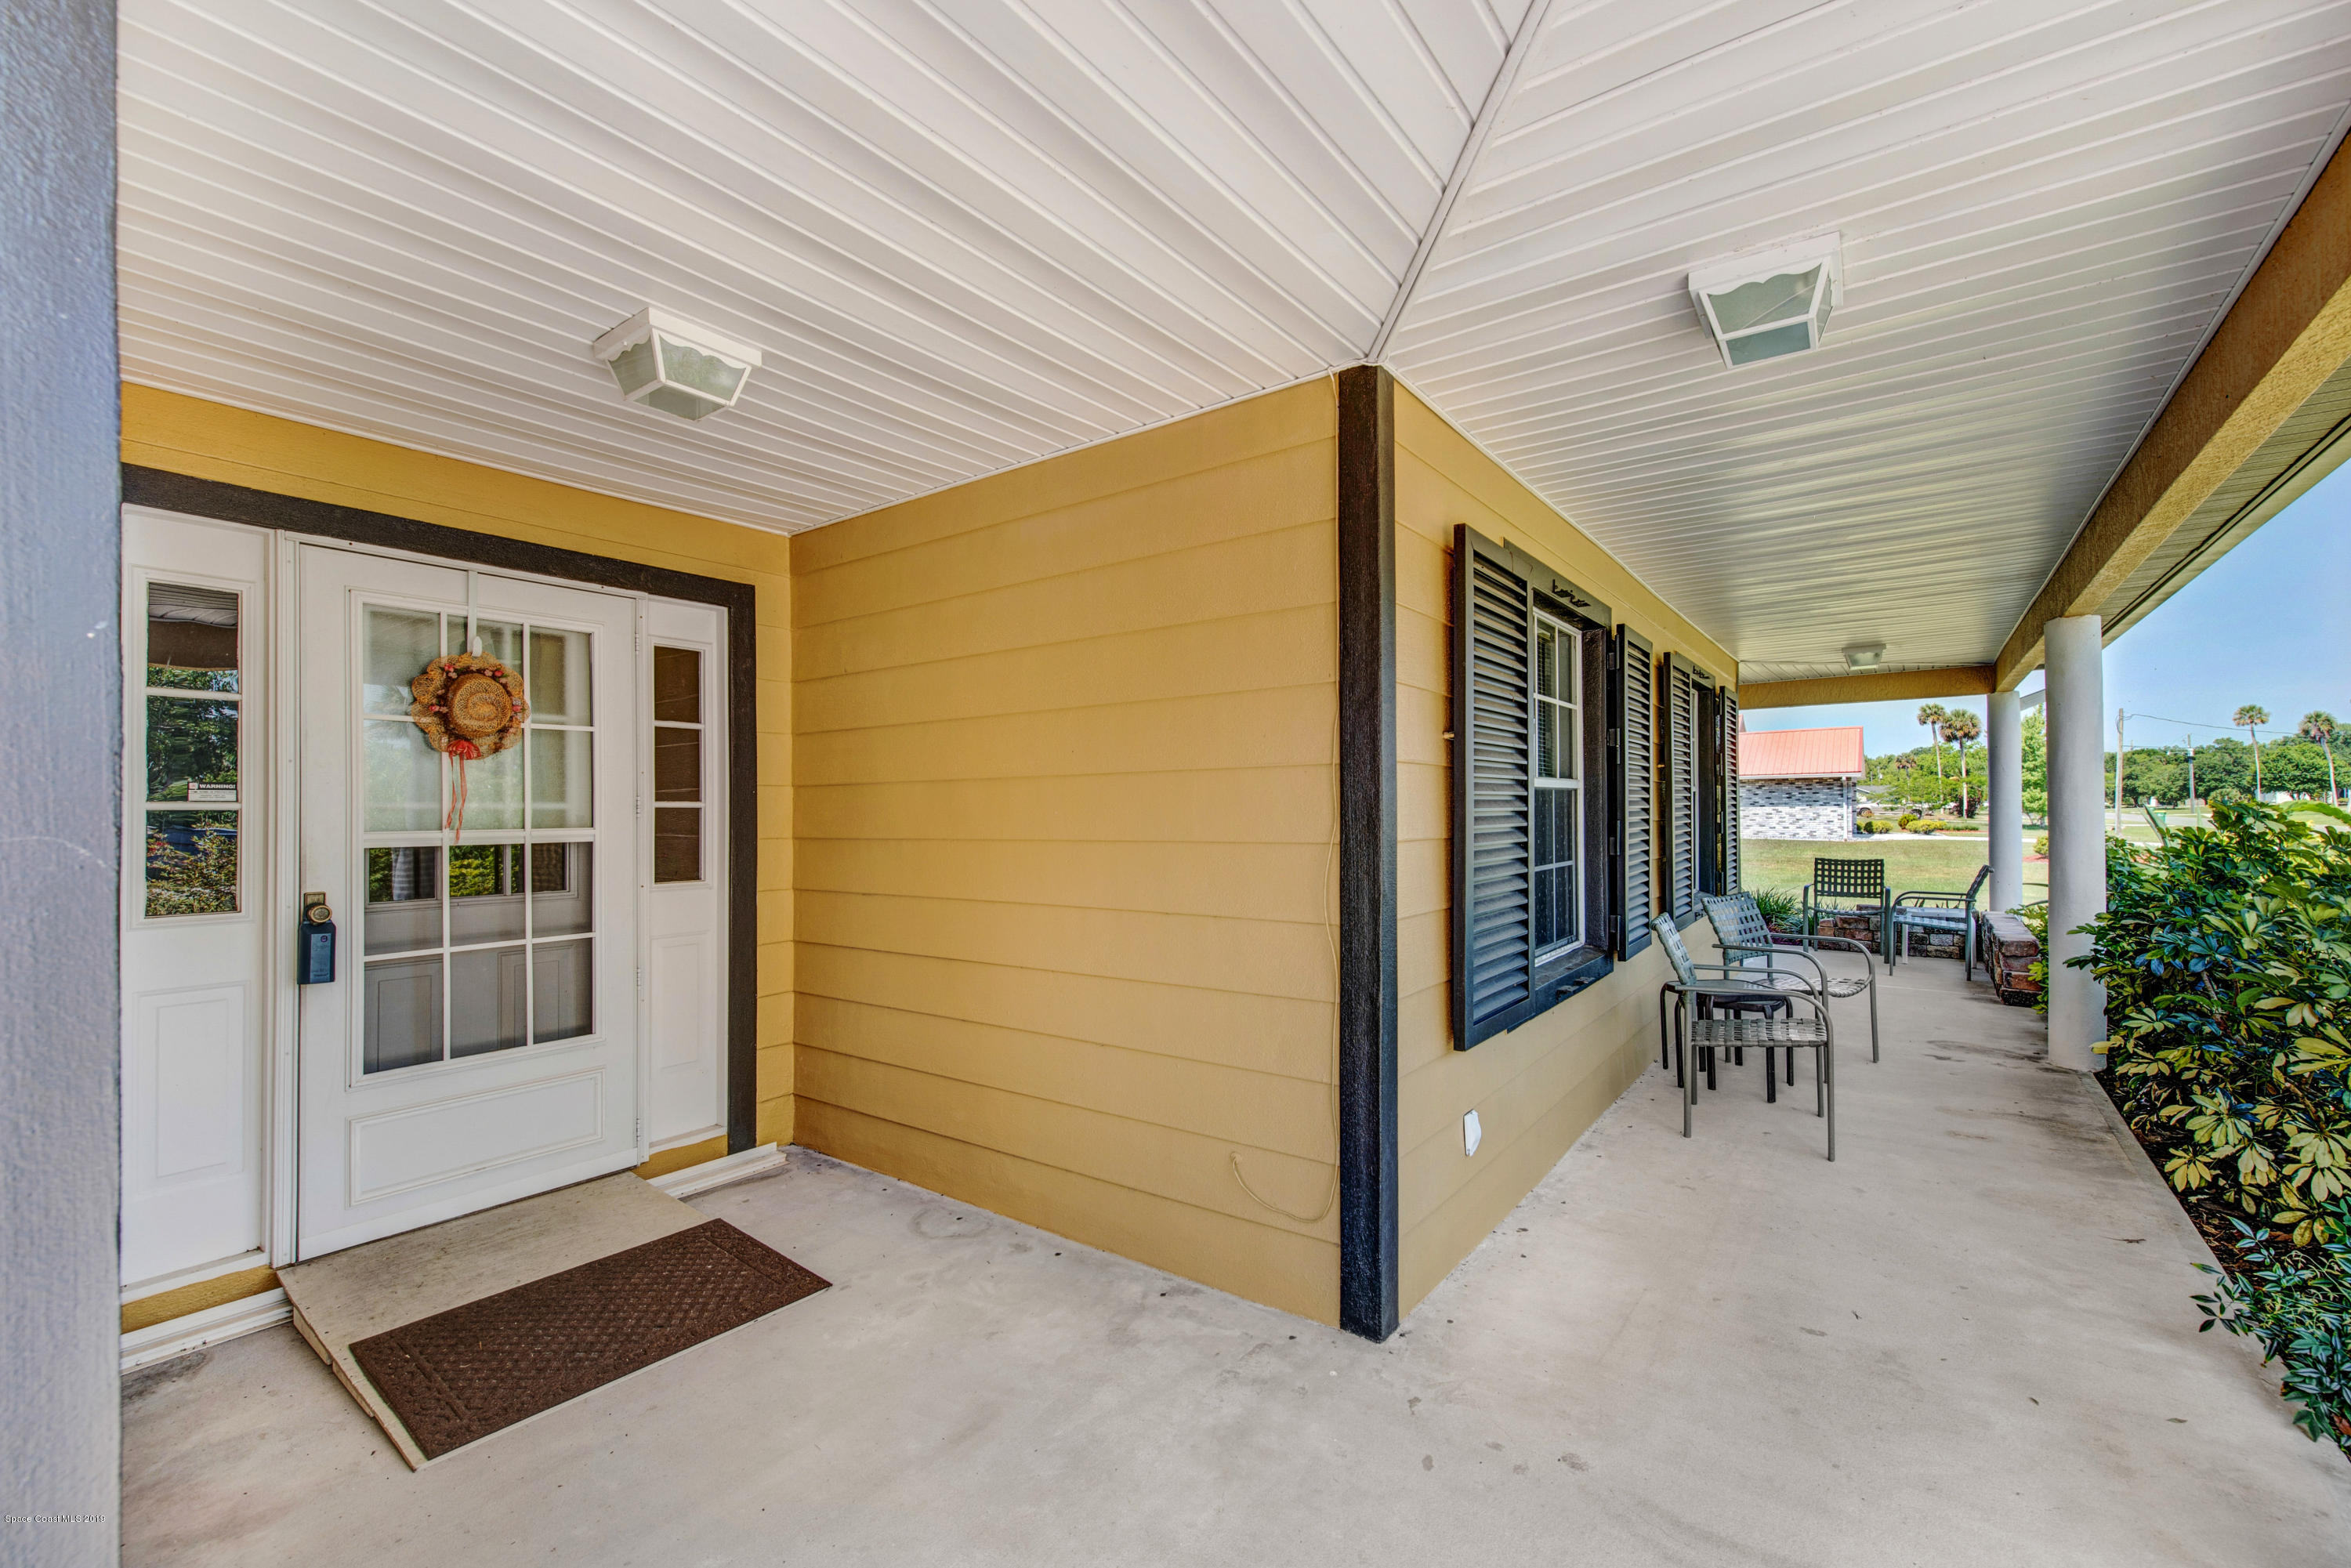 4988 Hamlin Circle, Mims, FL 32754 (MLS# 841612) - Ricardo